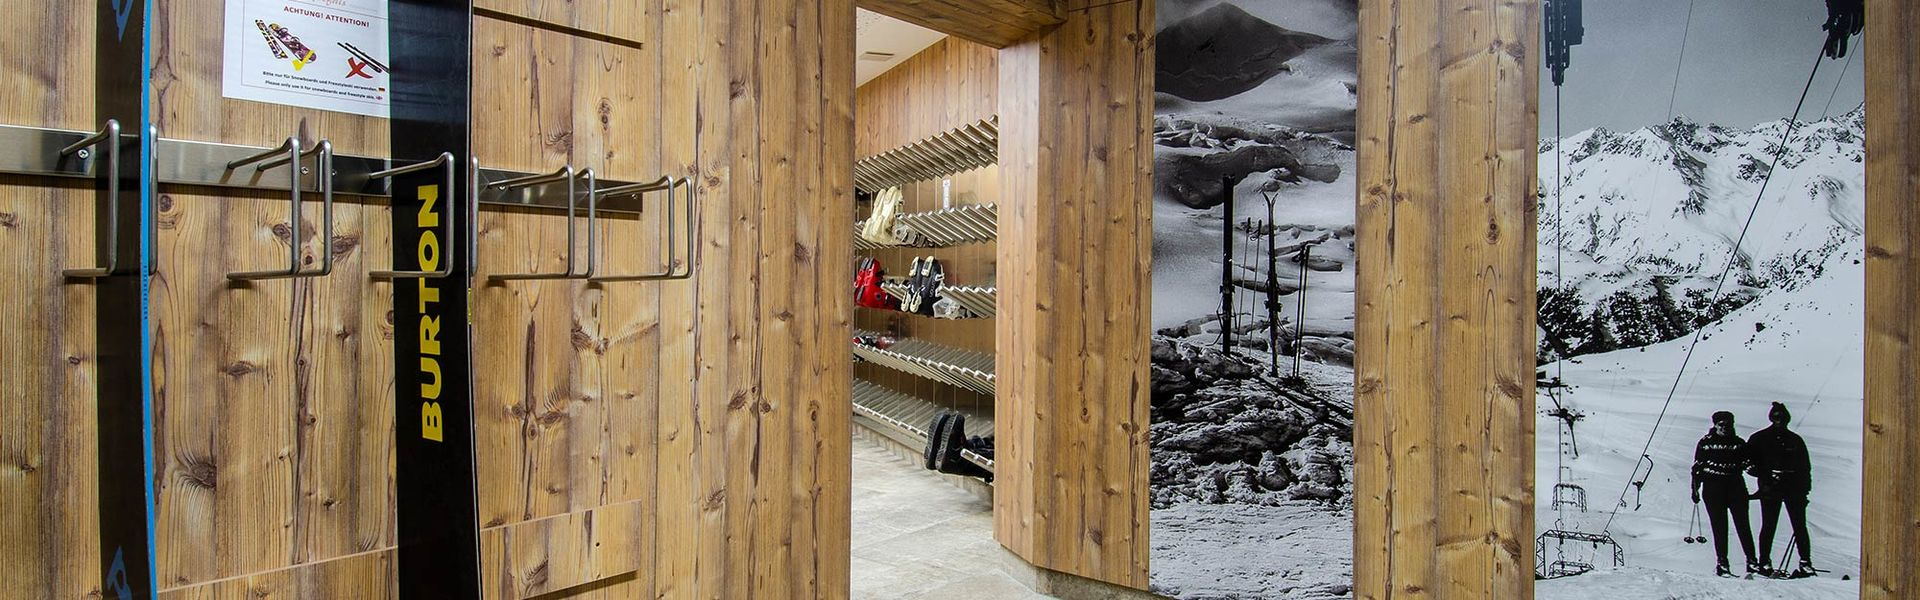 Appartements in Ischgl,